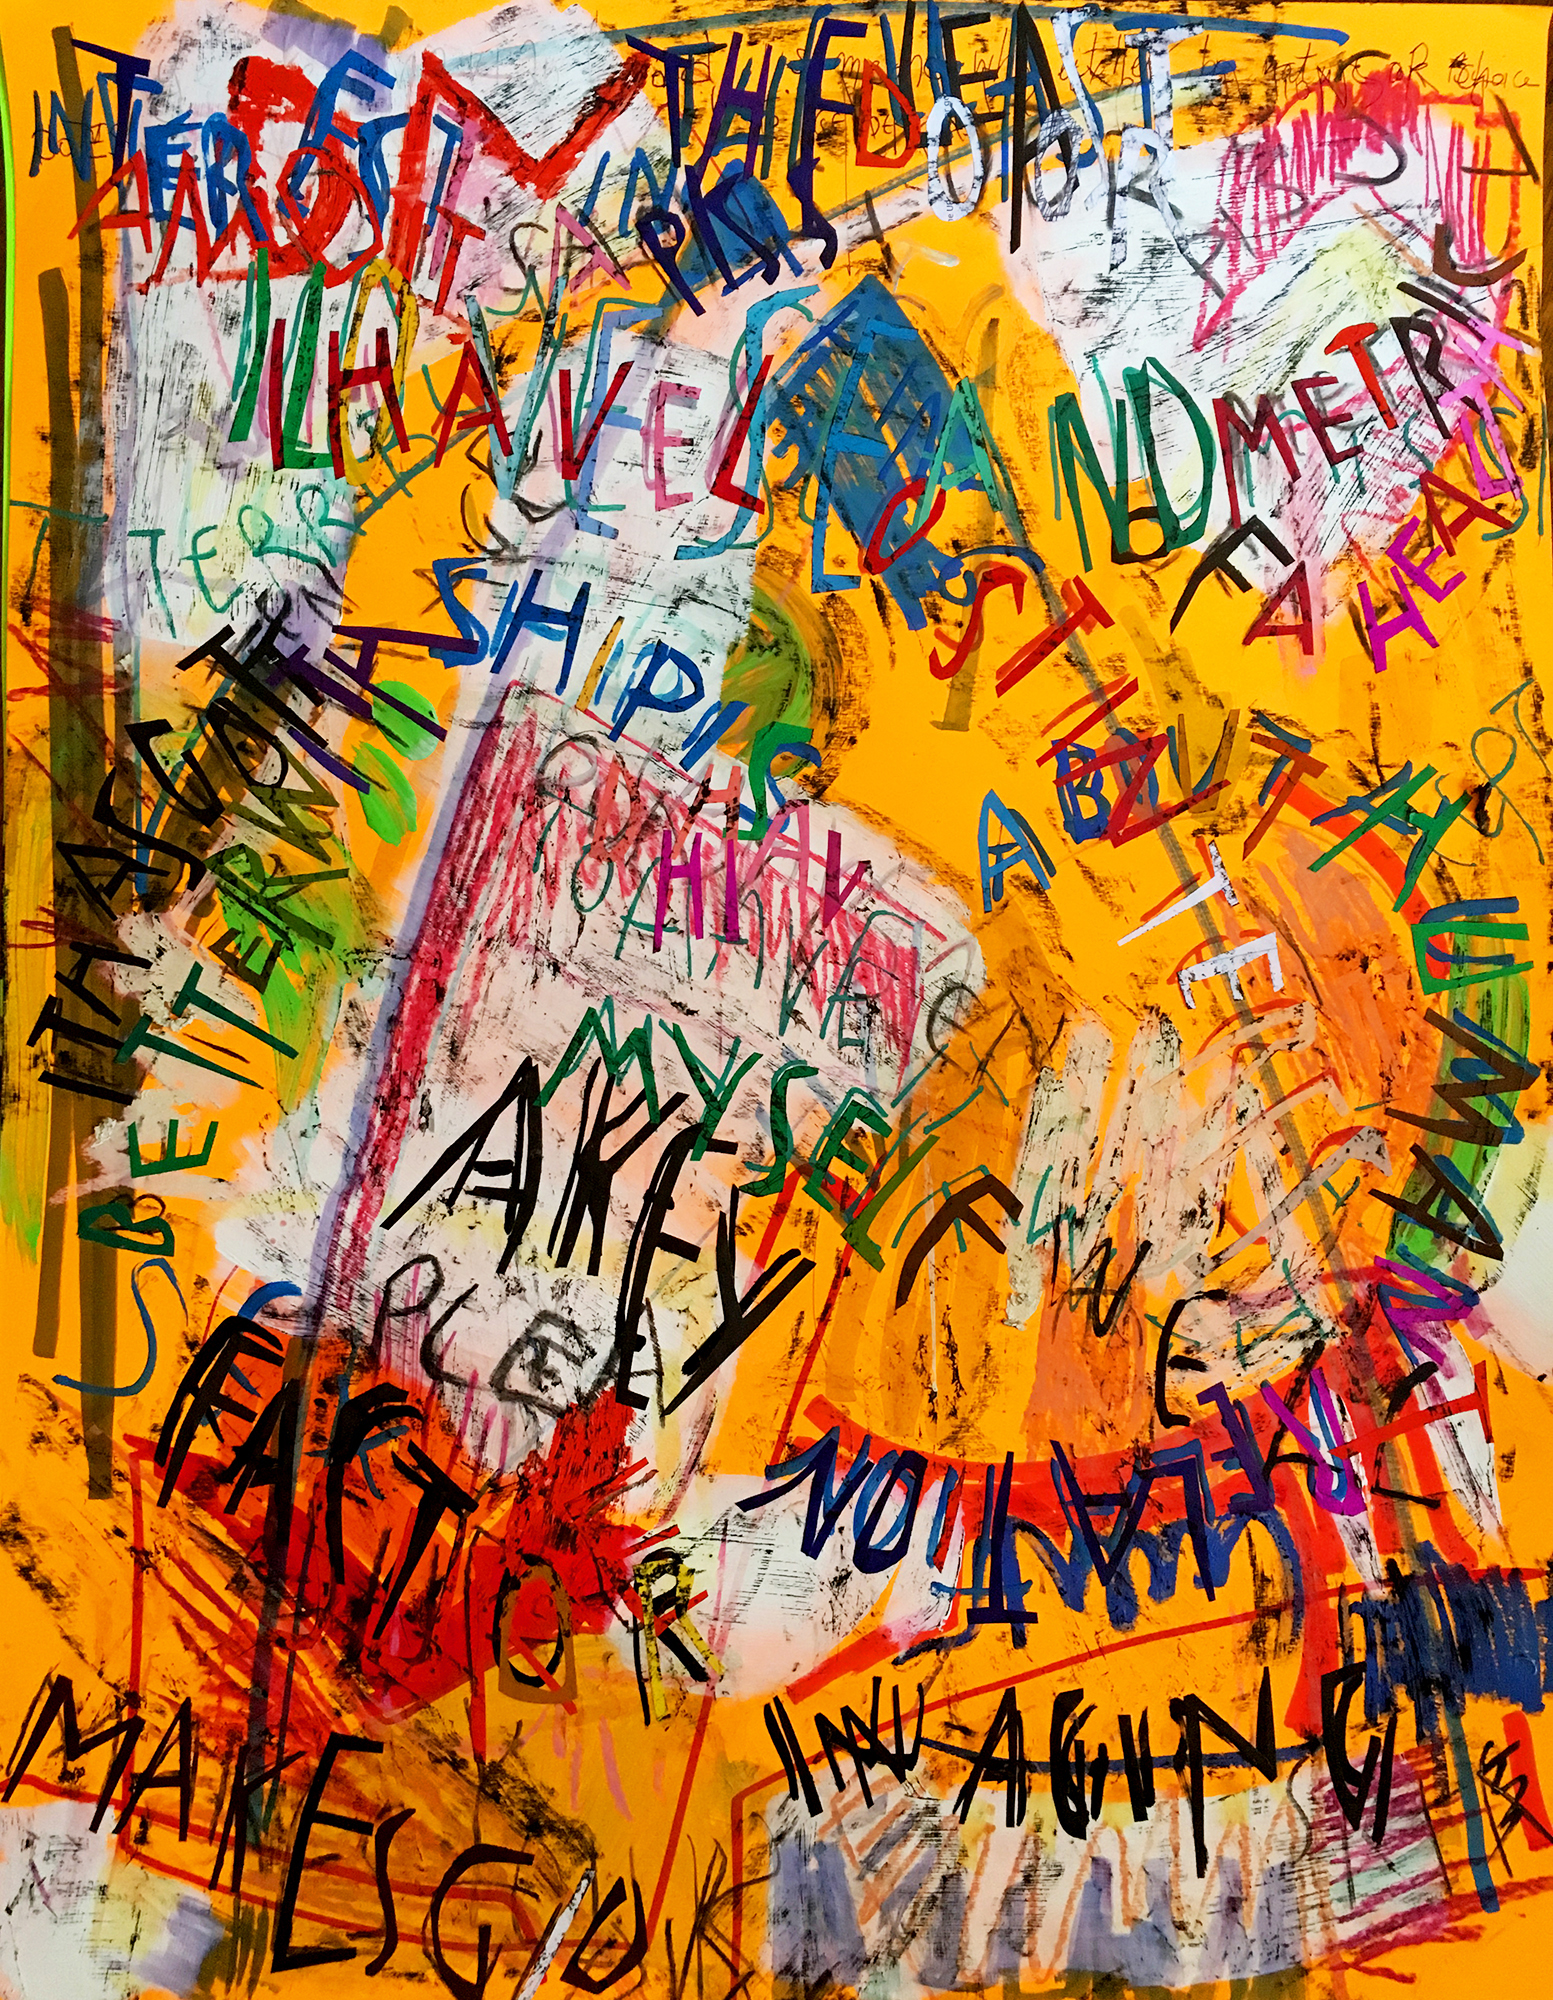 Despina Stokou_Wallflower (orange)_Markers, pastel, and paper collage on primed neon colored paper_71 x 56 cm_2018 copy.jpg